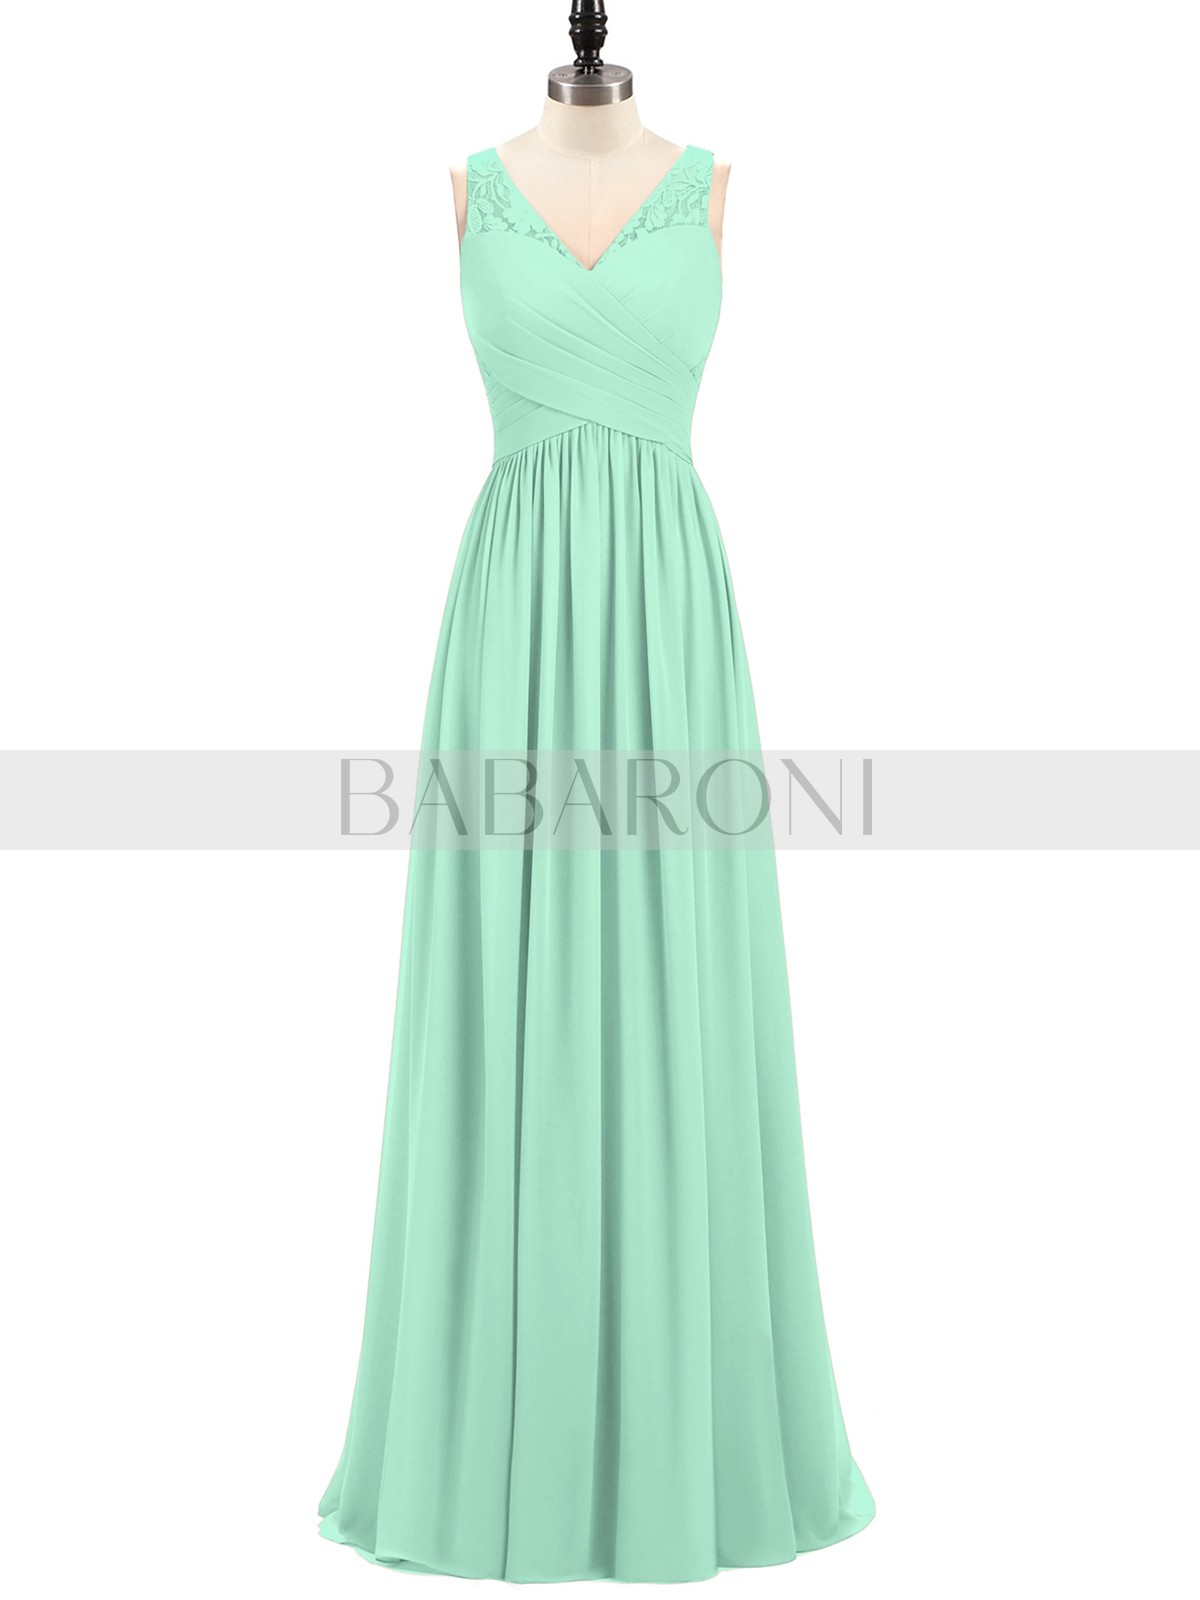 Mint Green Babaroni Adalyn Bridesmaid Dresses | Babaroni